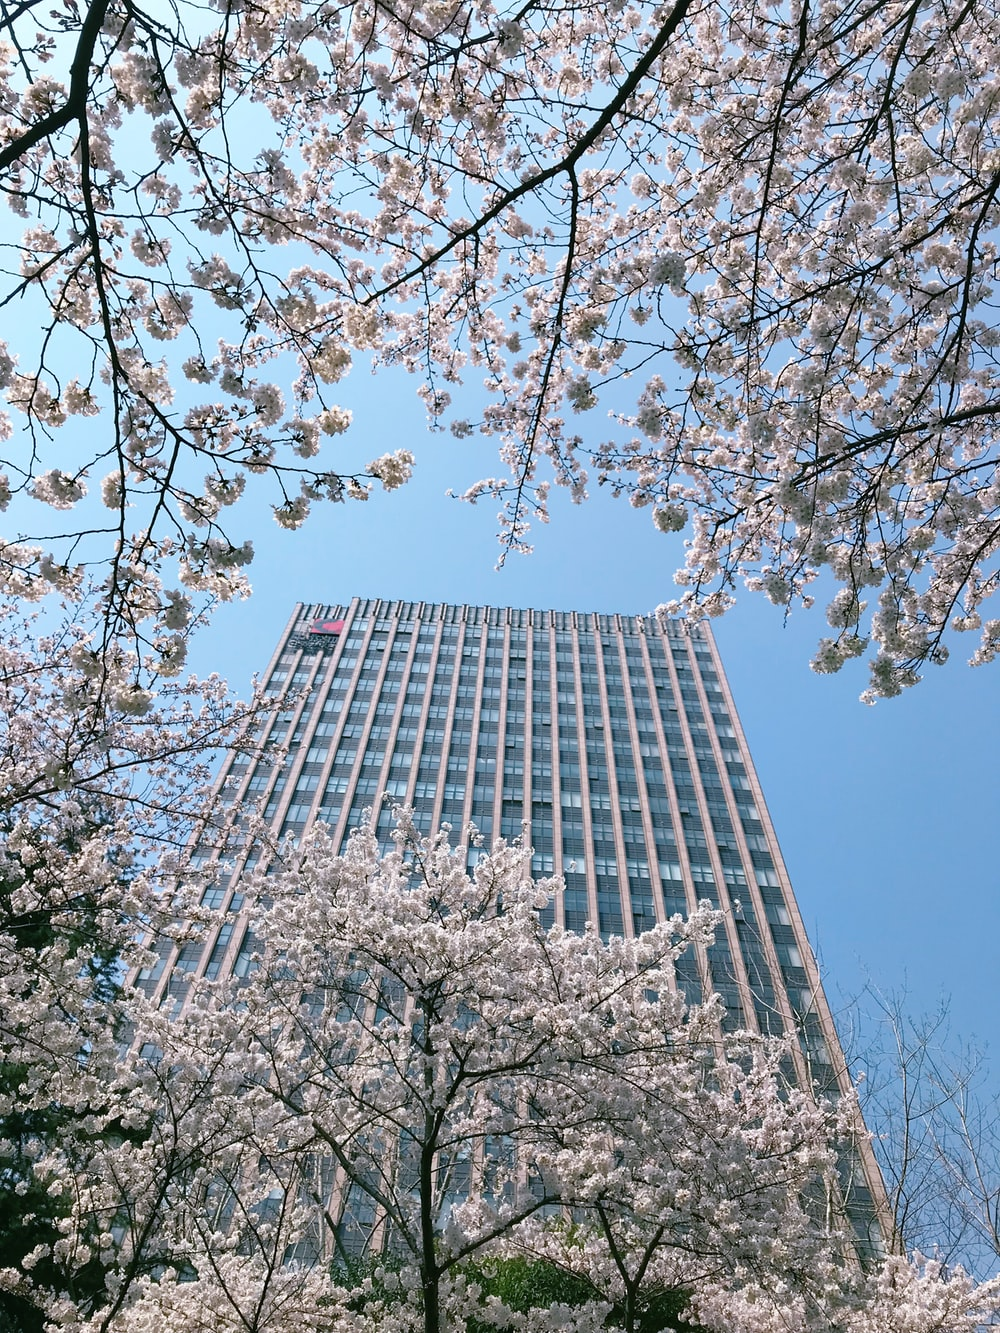 white cherry blossoms in bloom in front of tall building